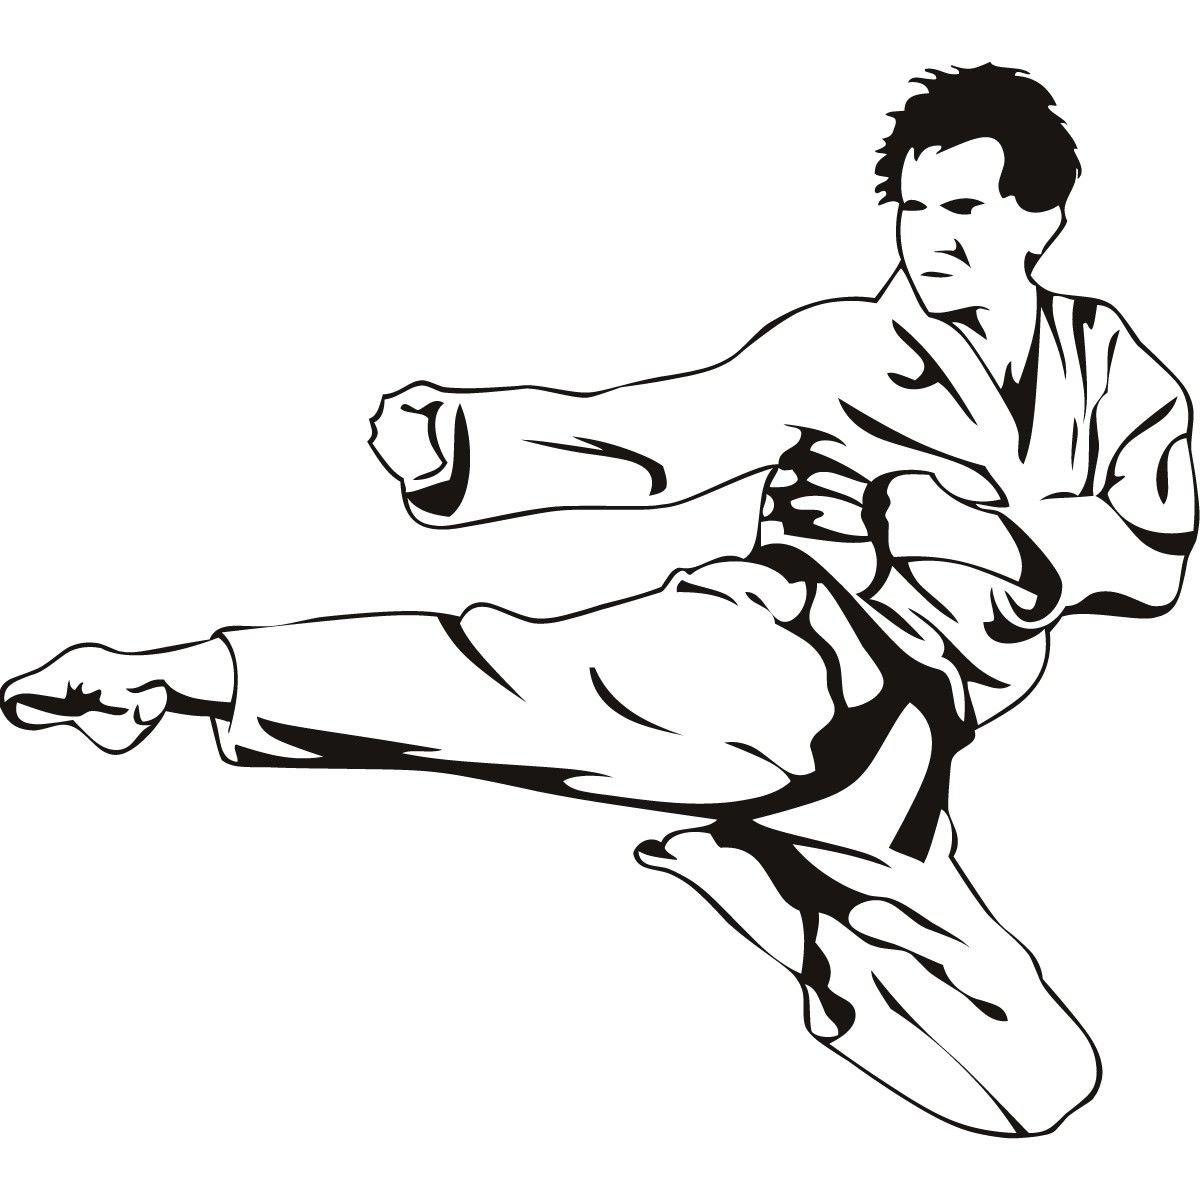 Free coloring pages karate - Karate Flying Kick Martial Arts Sketch Http Colorasketch Com Karate